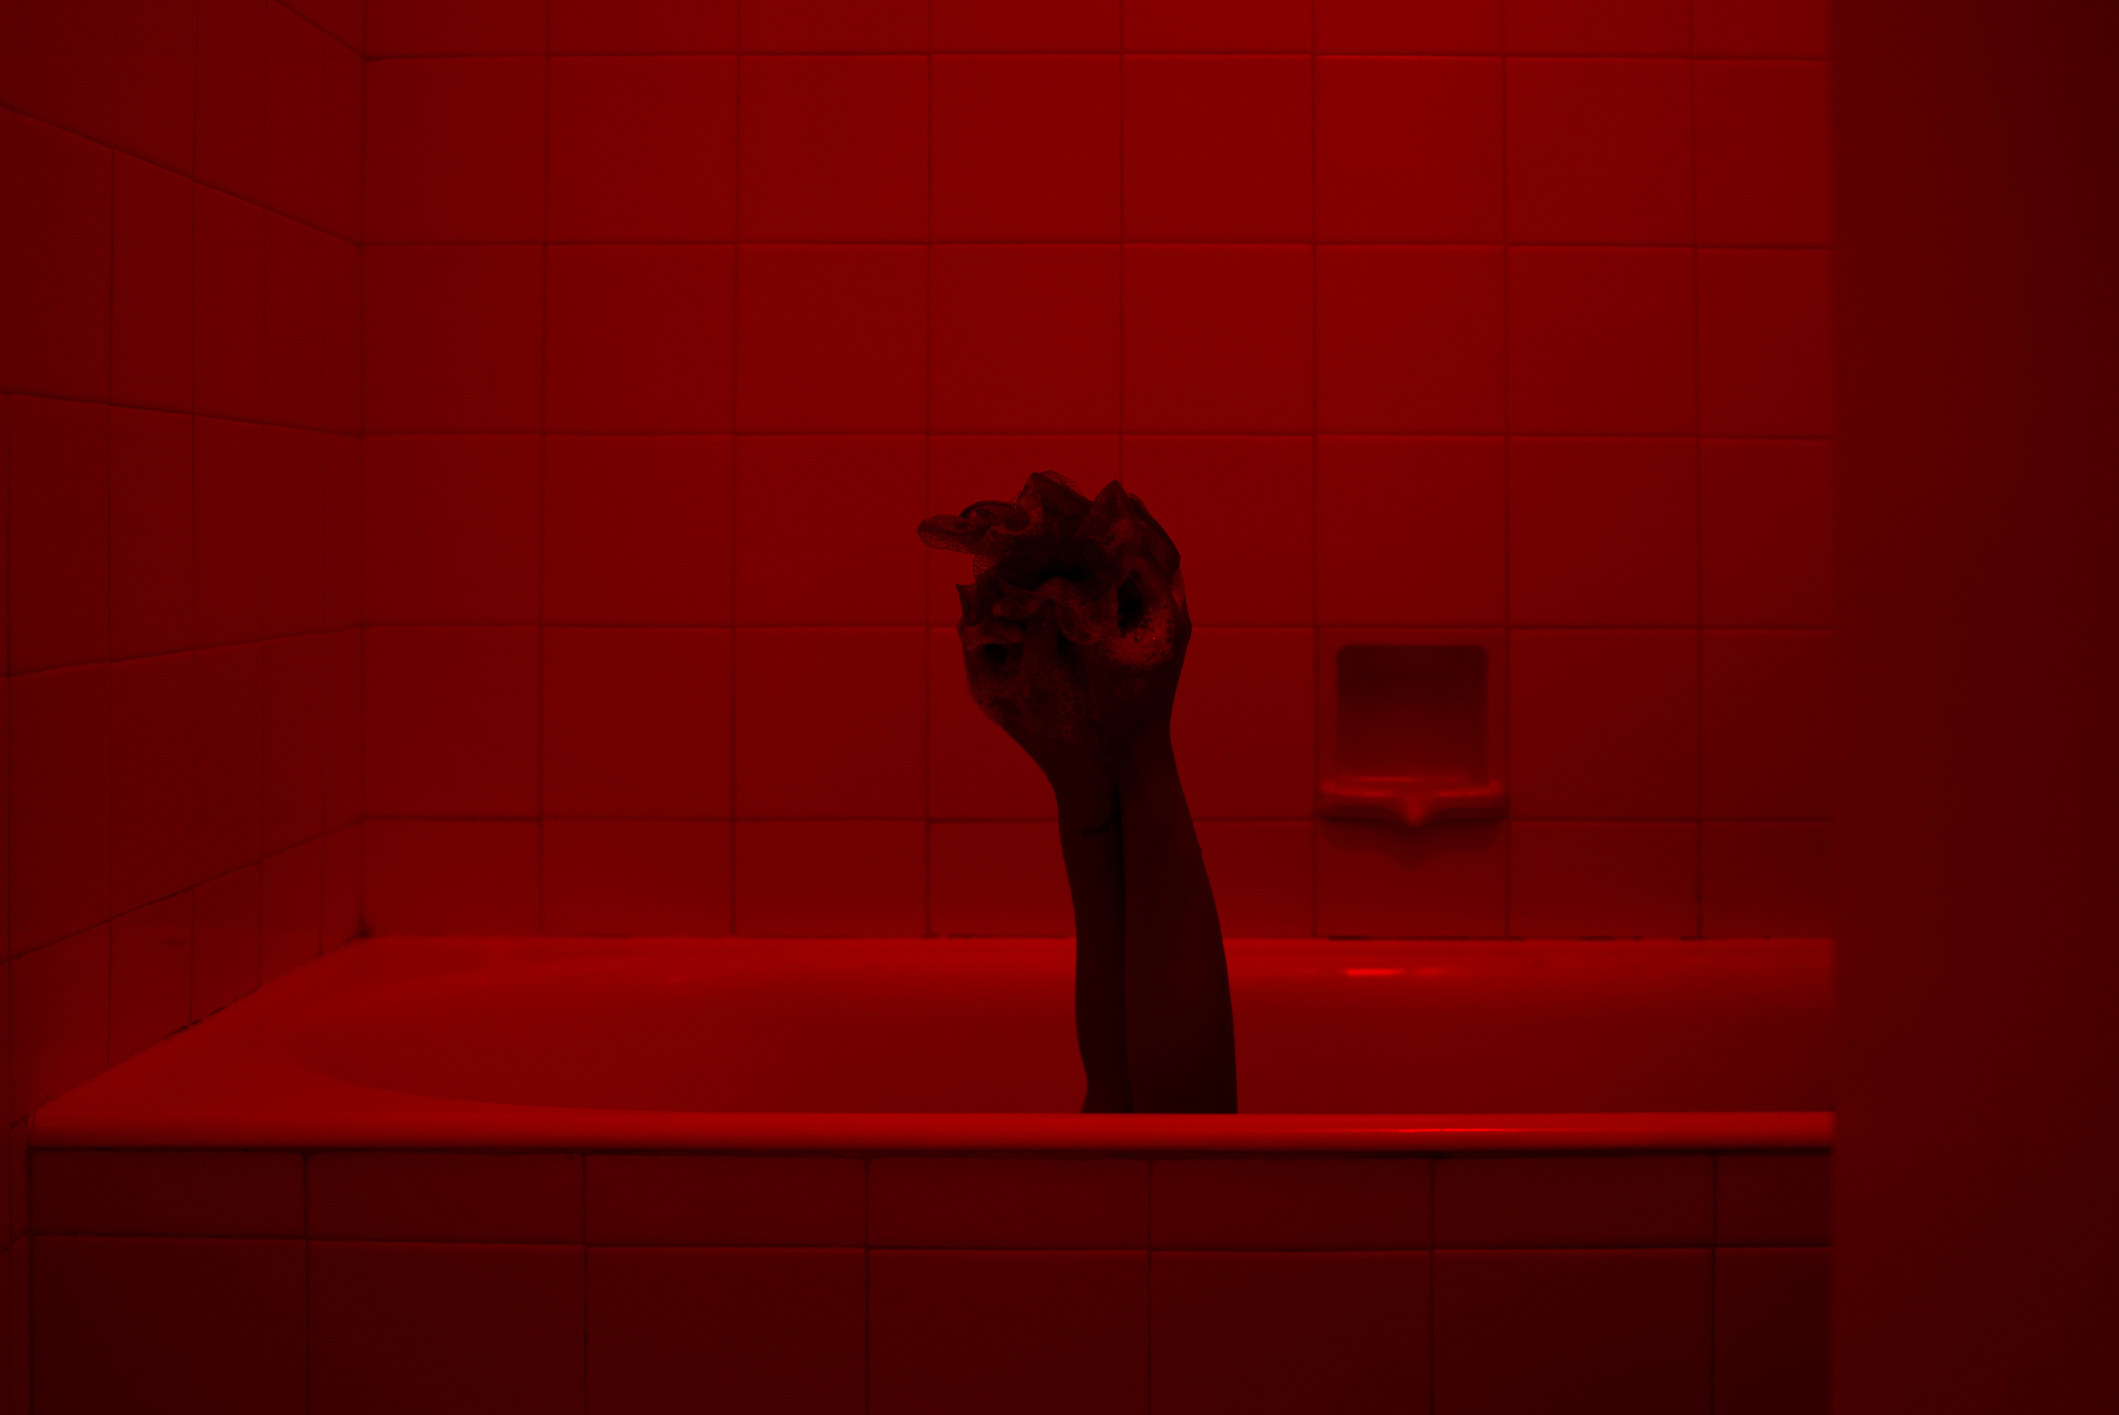 Scary hand sticking out of a bathtub